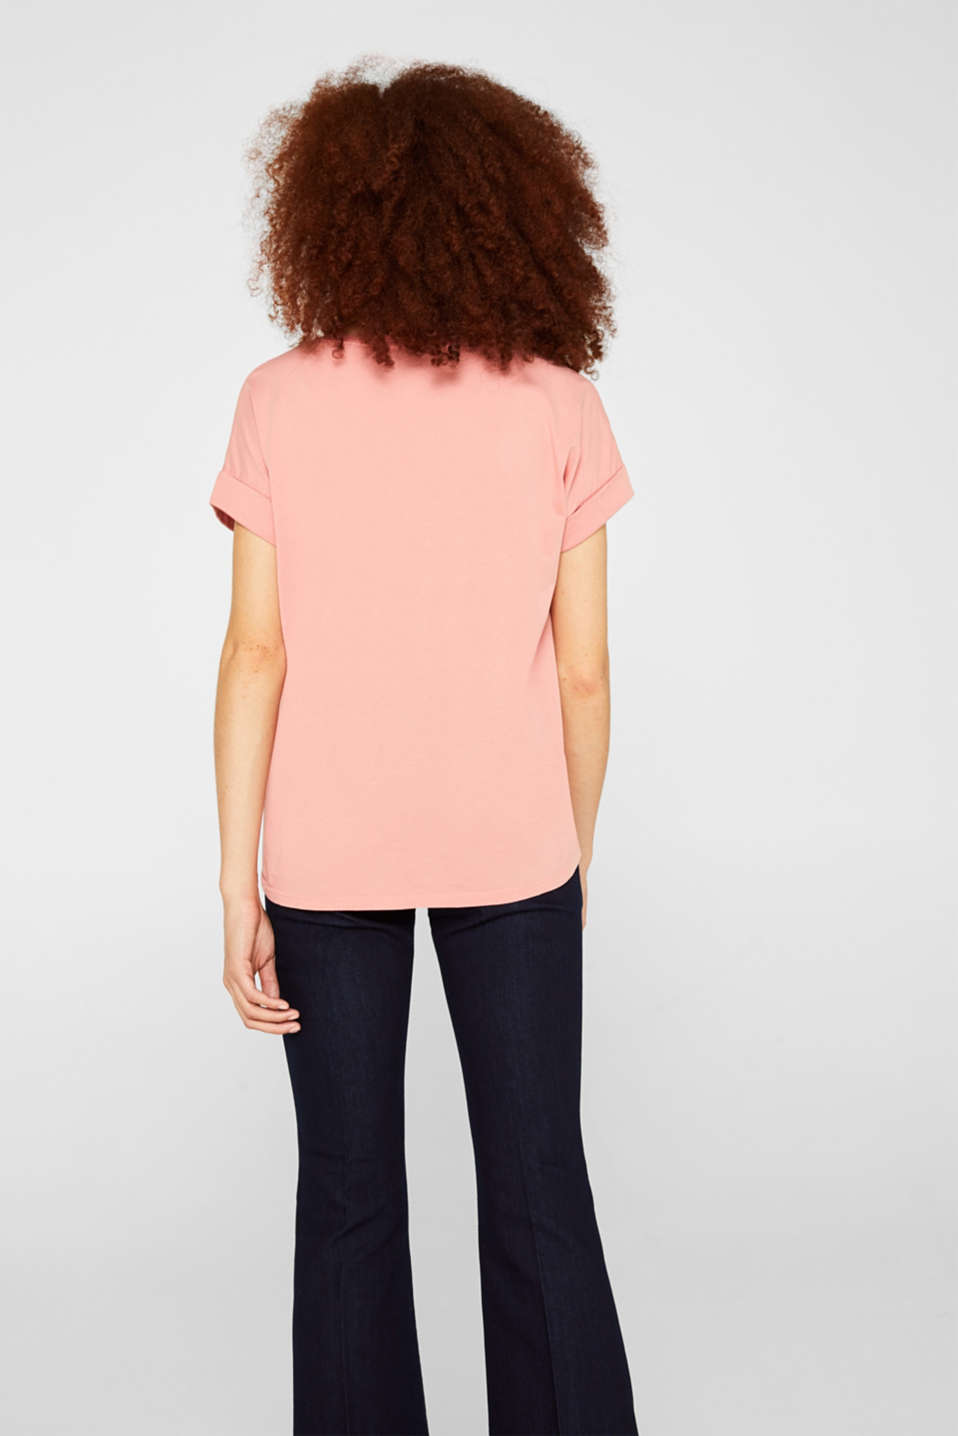 T-shirt with a casual cut, 100% cotton, BLUSH, detail image number 3